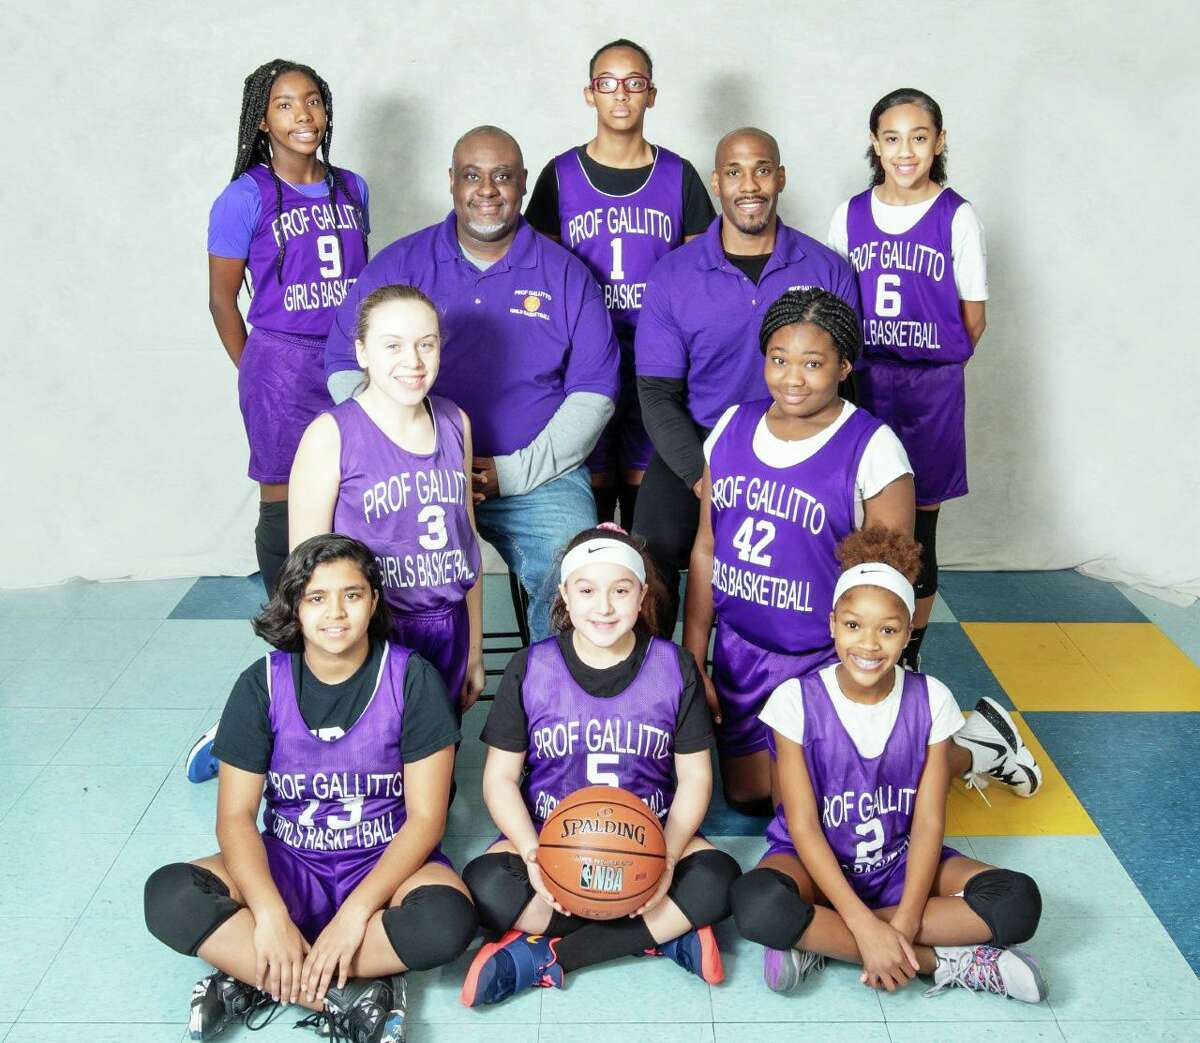 The tournament championship game for the Prof. Gallitto girls basketball league teams (grades six to eight) was held Feb. 15. The winning team was sponsored by Illiano's Ristorante and Pizzeria on Washington Street in Middletown. They were coached by Kevin Butler, left, top row; and Darrin Bryant, right, top row.